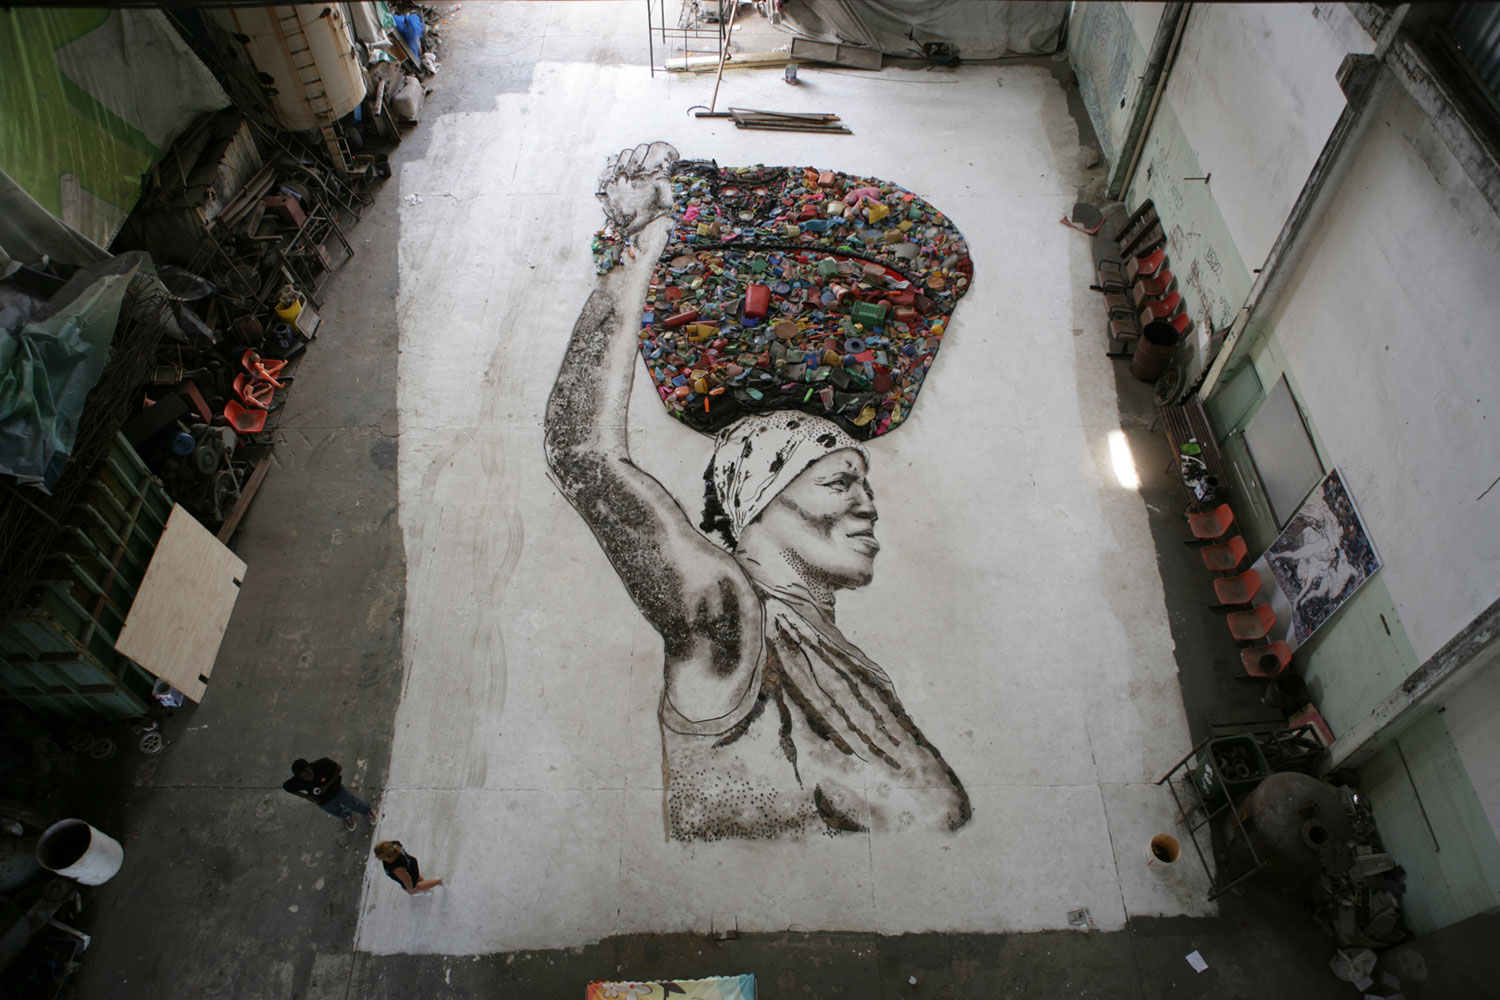 The portrait of Irma is created on the floor of the studio by Muniz and the workers of Jardim Gramacho. Once complete, the final portrait will be photographed from above by Muniz